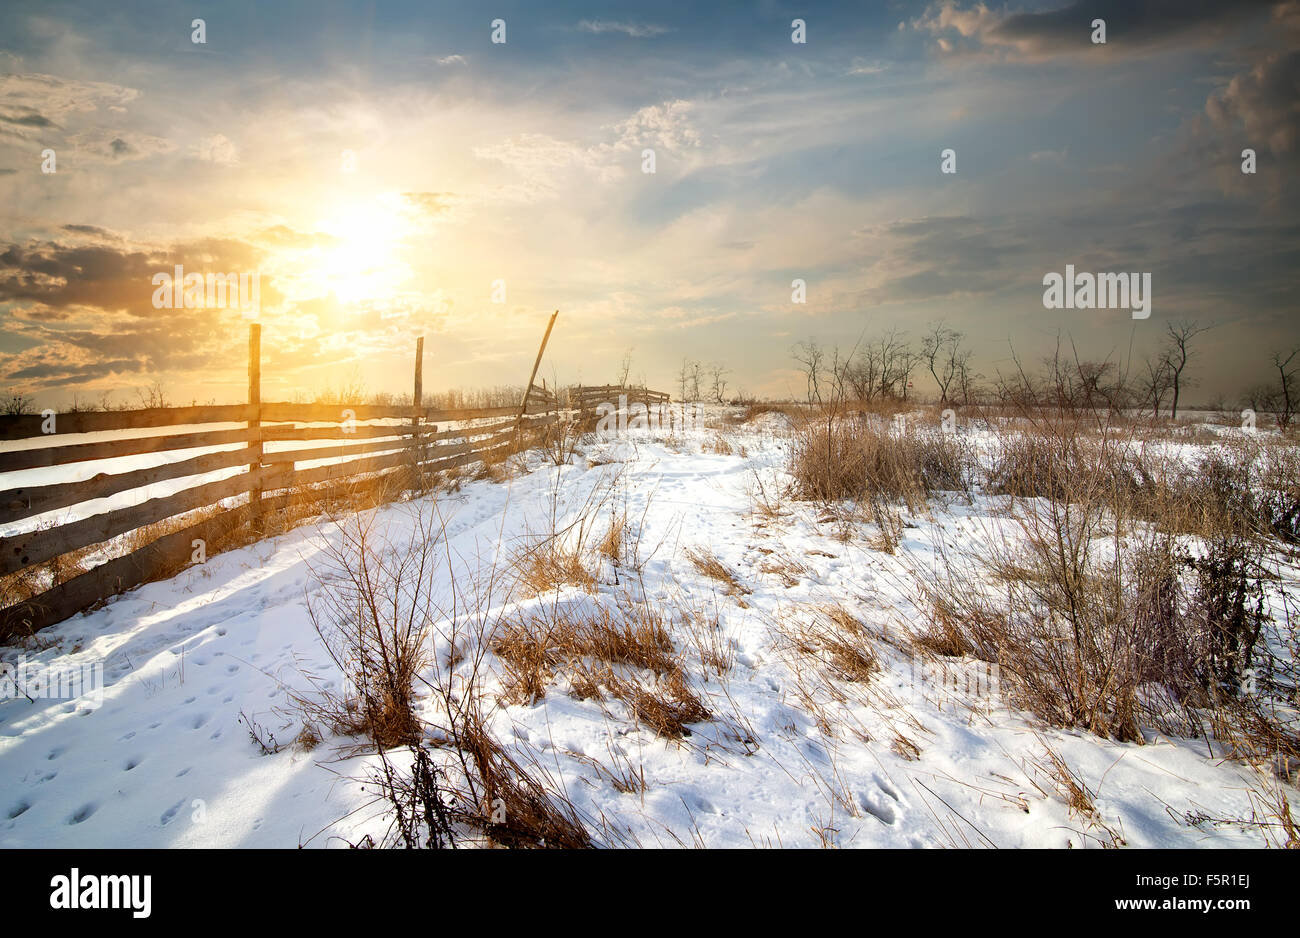 Wooden fence in winter field at sunset - Stock Image